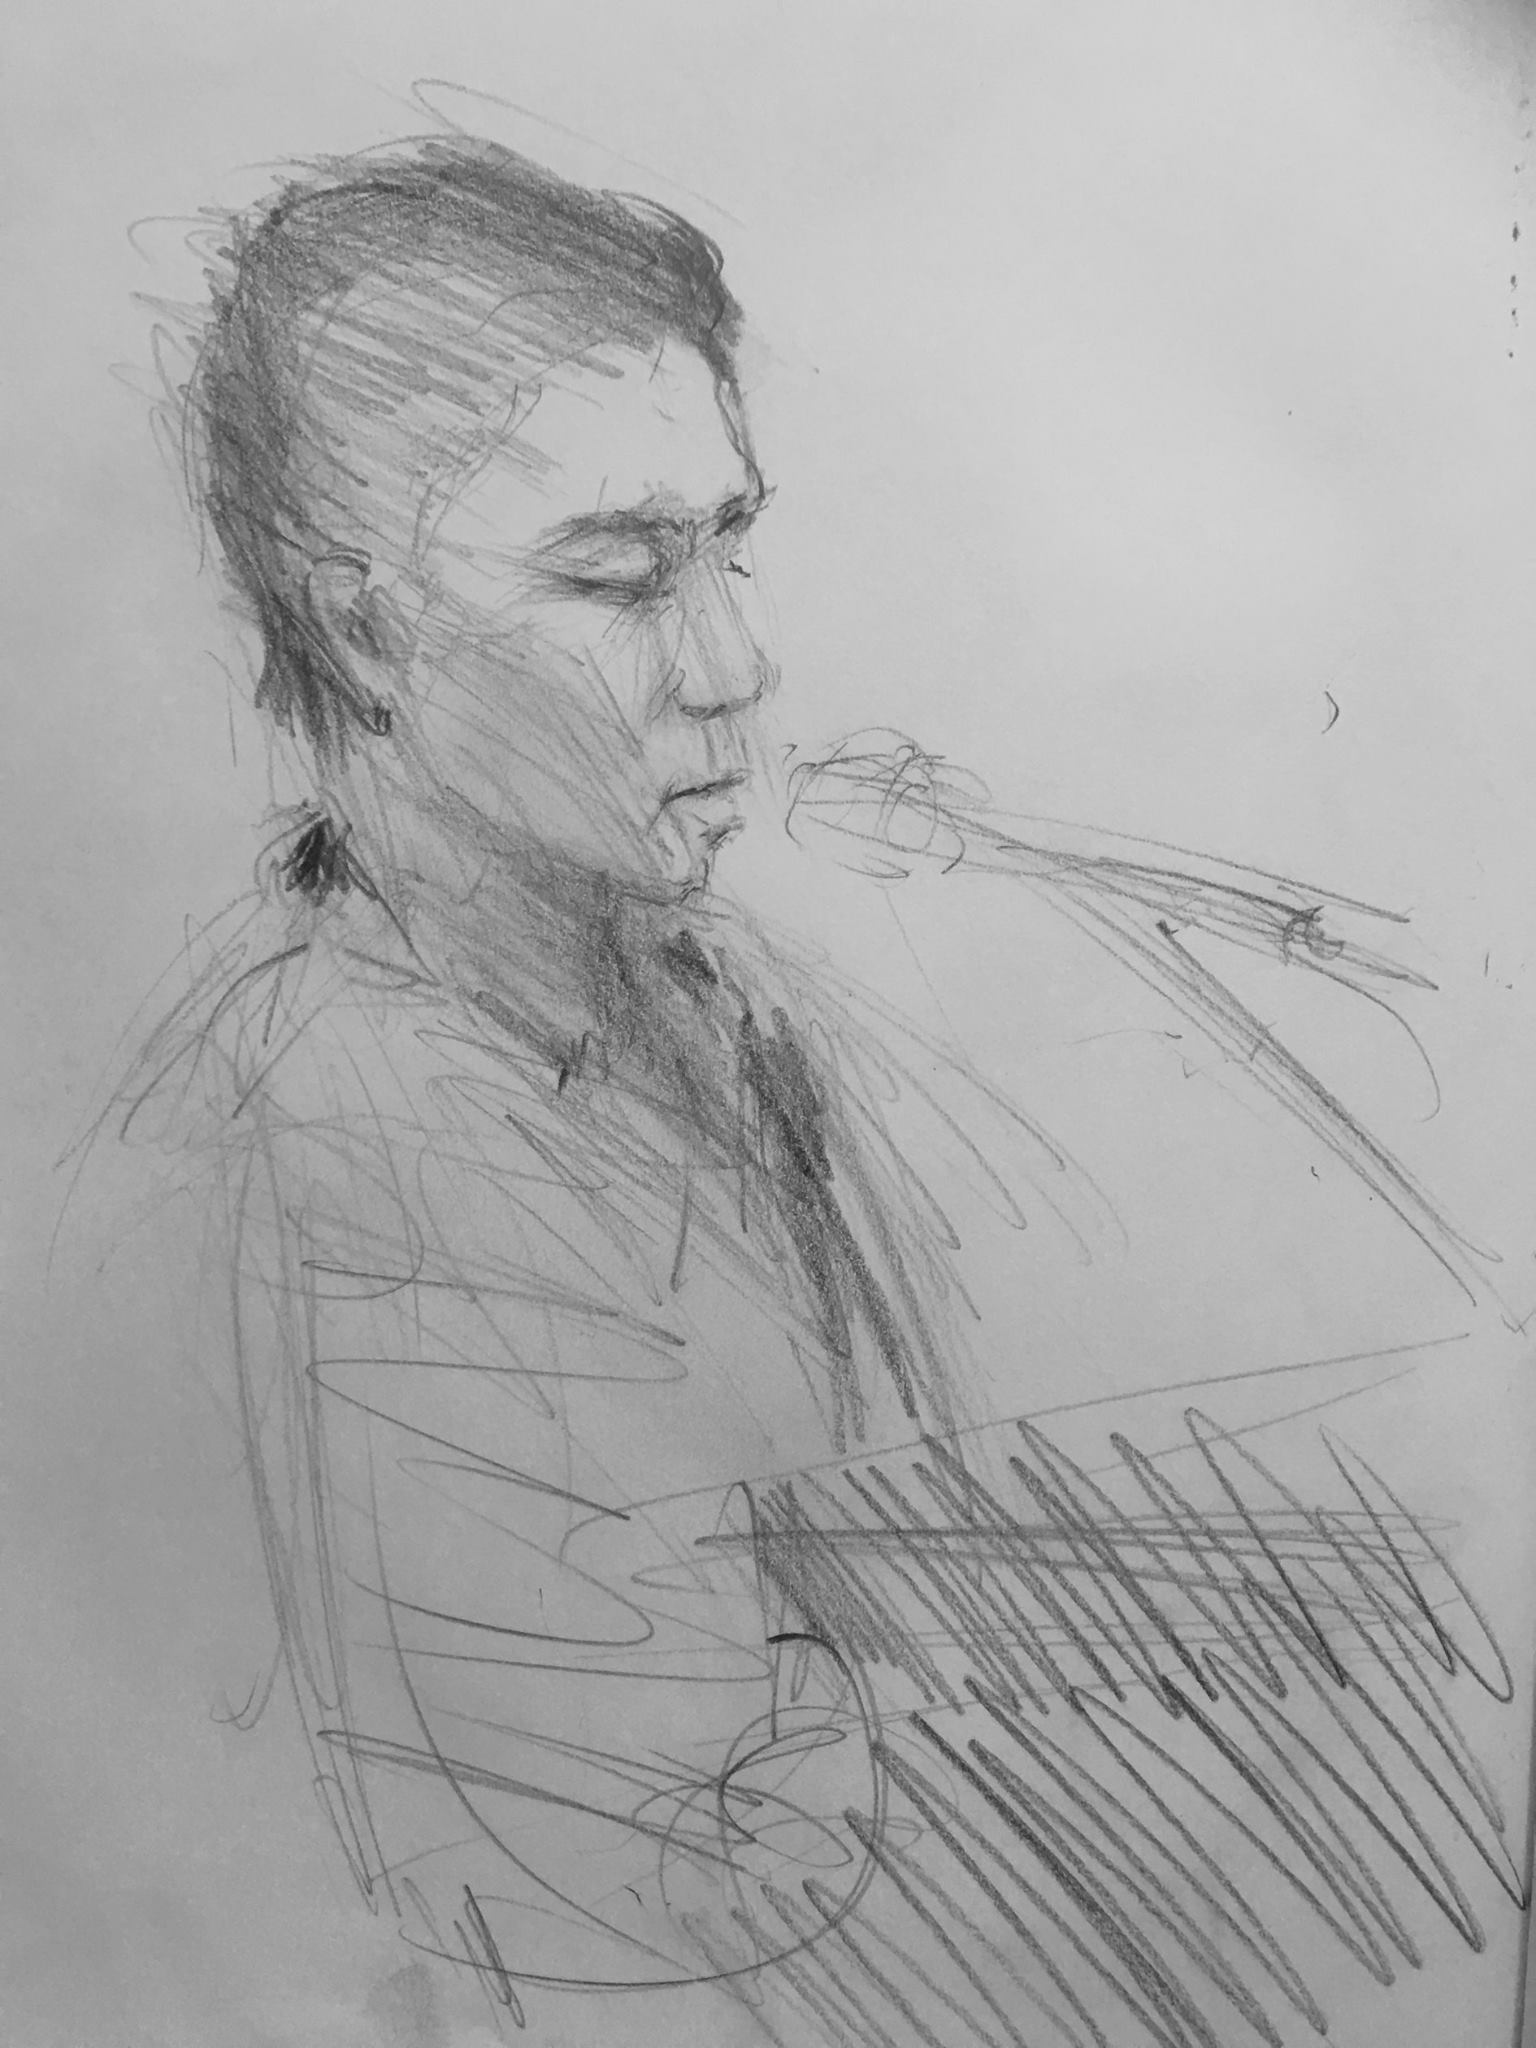 This sketch was done by the talented Peter Danko during the York, PA House Concert CD Release party....done in just 2 minutes!